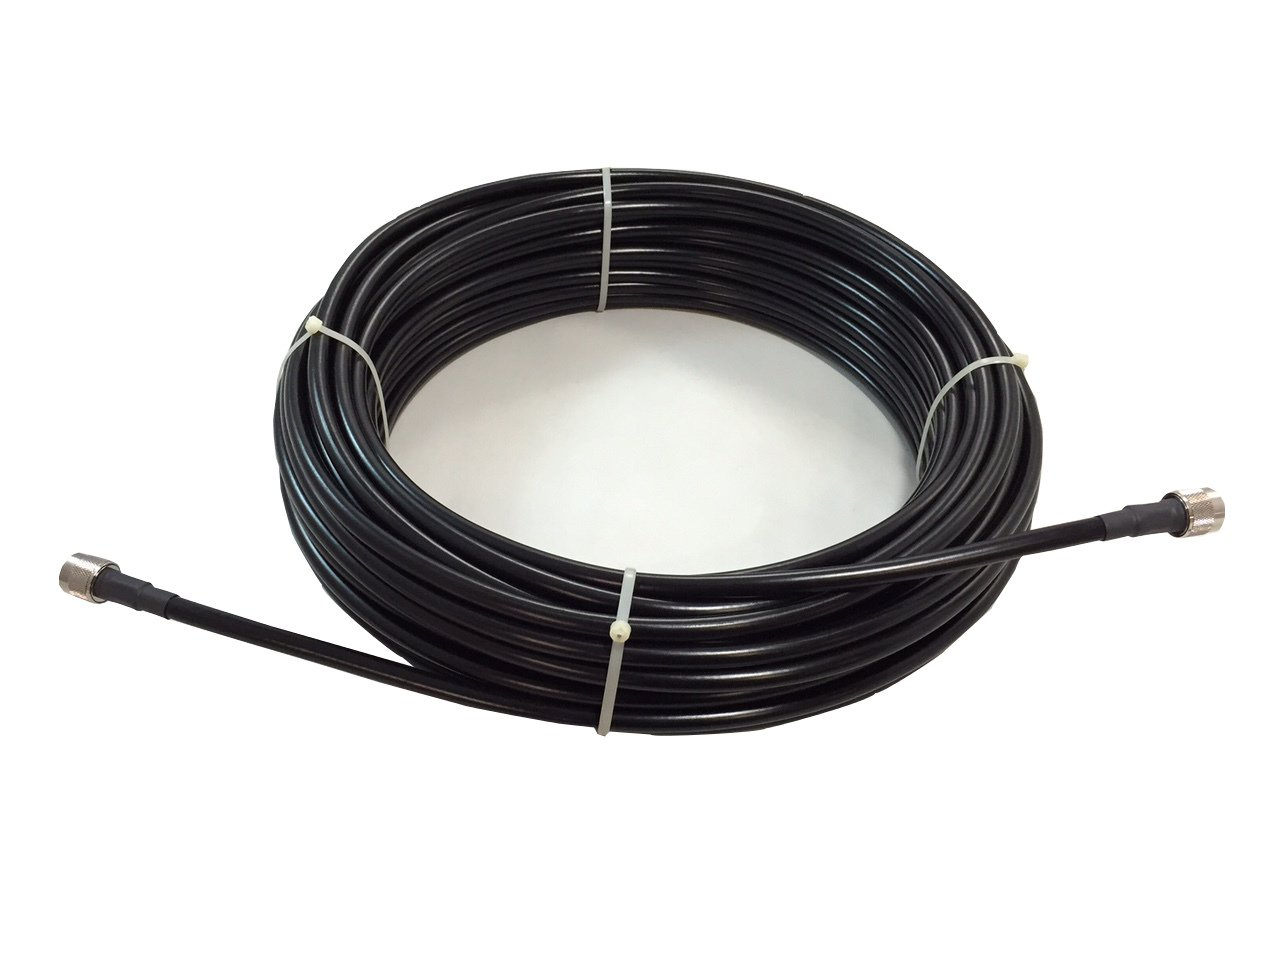 Amazon.com: LOW-240 RF Coax Cable Jumper - 3 Meters with N Male Connectors: Home Audio & Theater